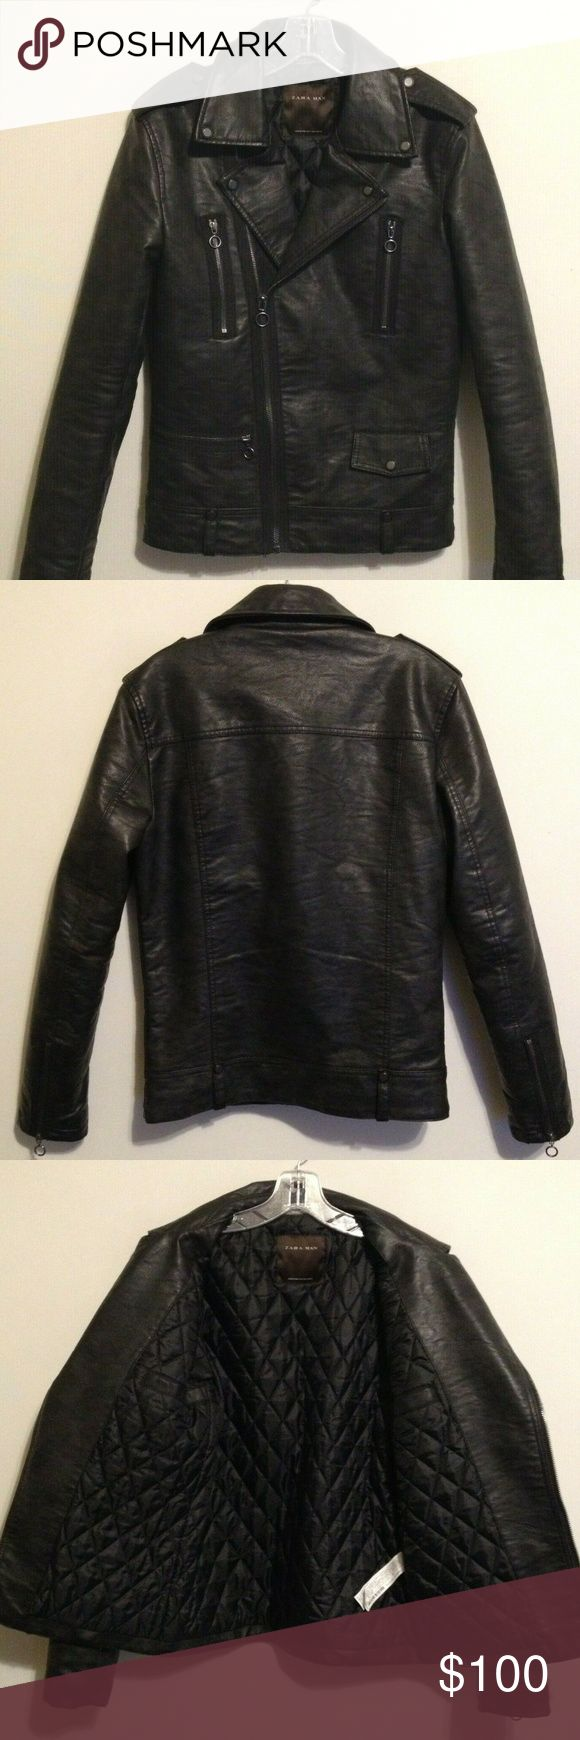 Zara Man Black Faux Leather Motorcycle Jacket S Faux